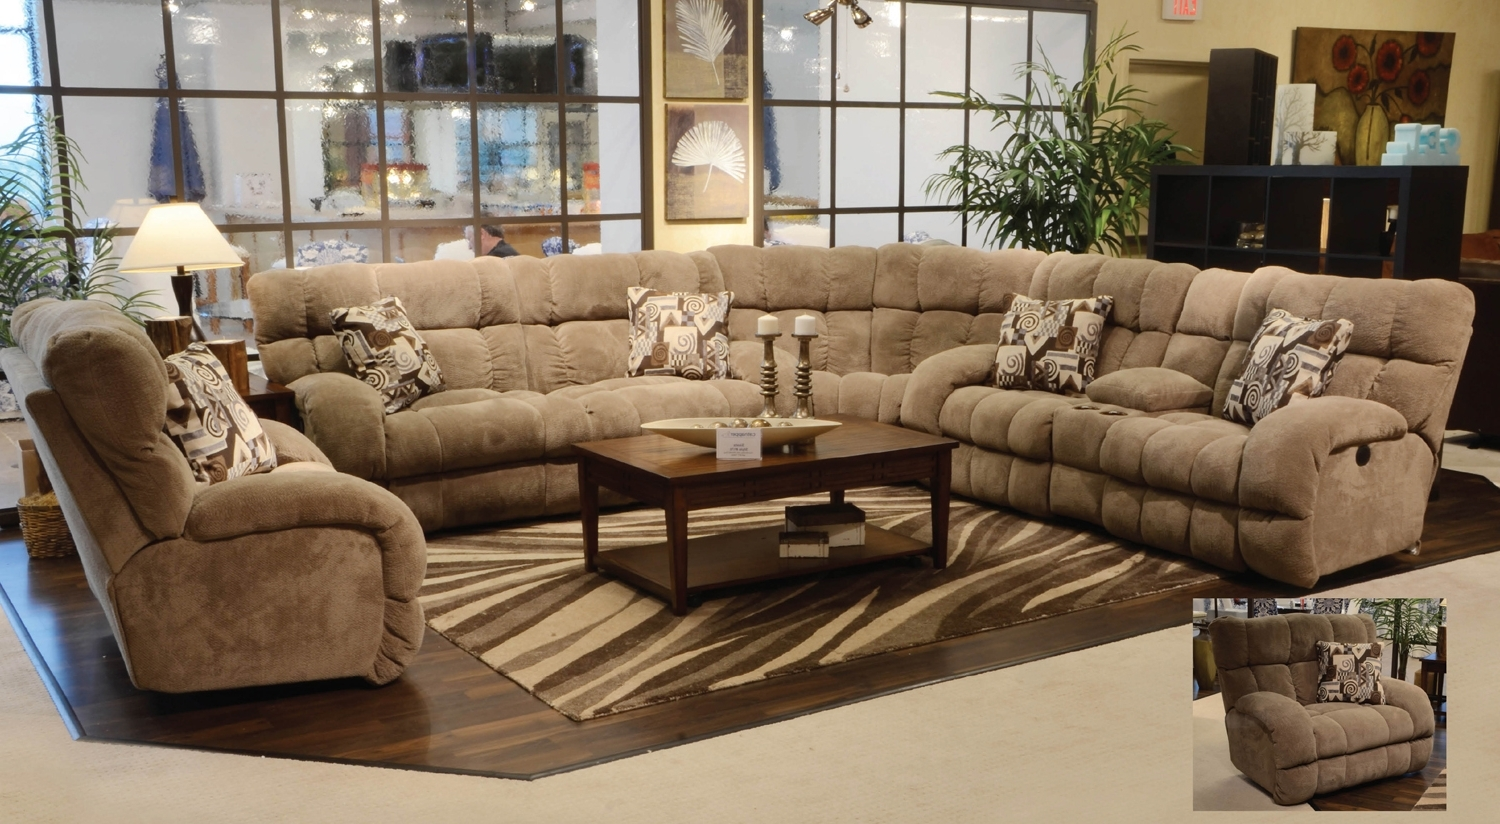 Newest Deep Sectional Sofas With Chaise Intended For Sofa ~ Comfy Deep Couches And Sofas Deep Cushion Sectional Sofa (View 12 of 15)